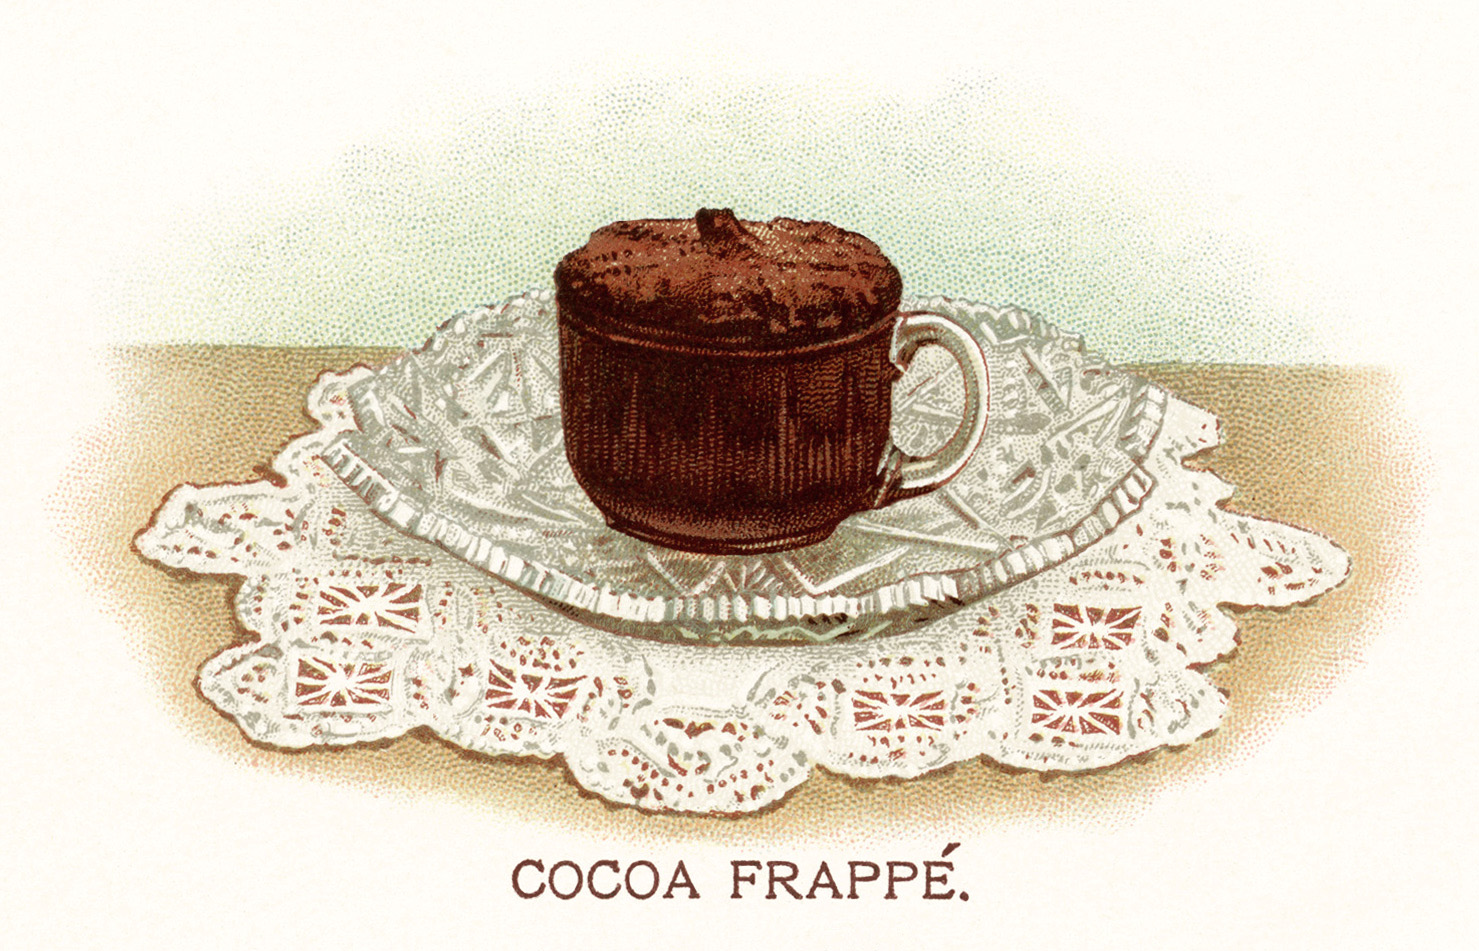 Yum! This free vintage image of a cocoa drink looks delicious